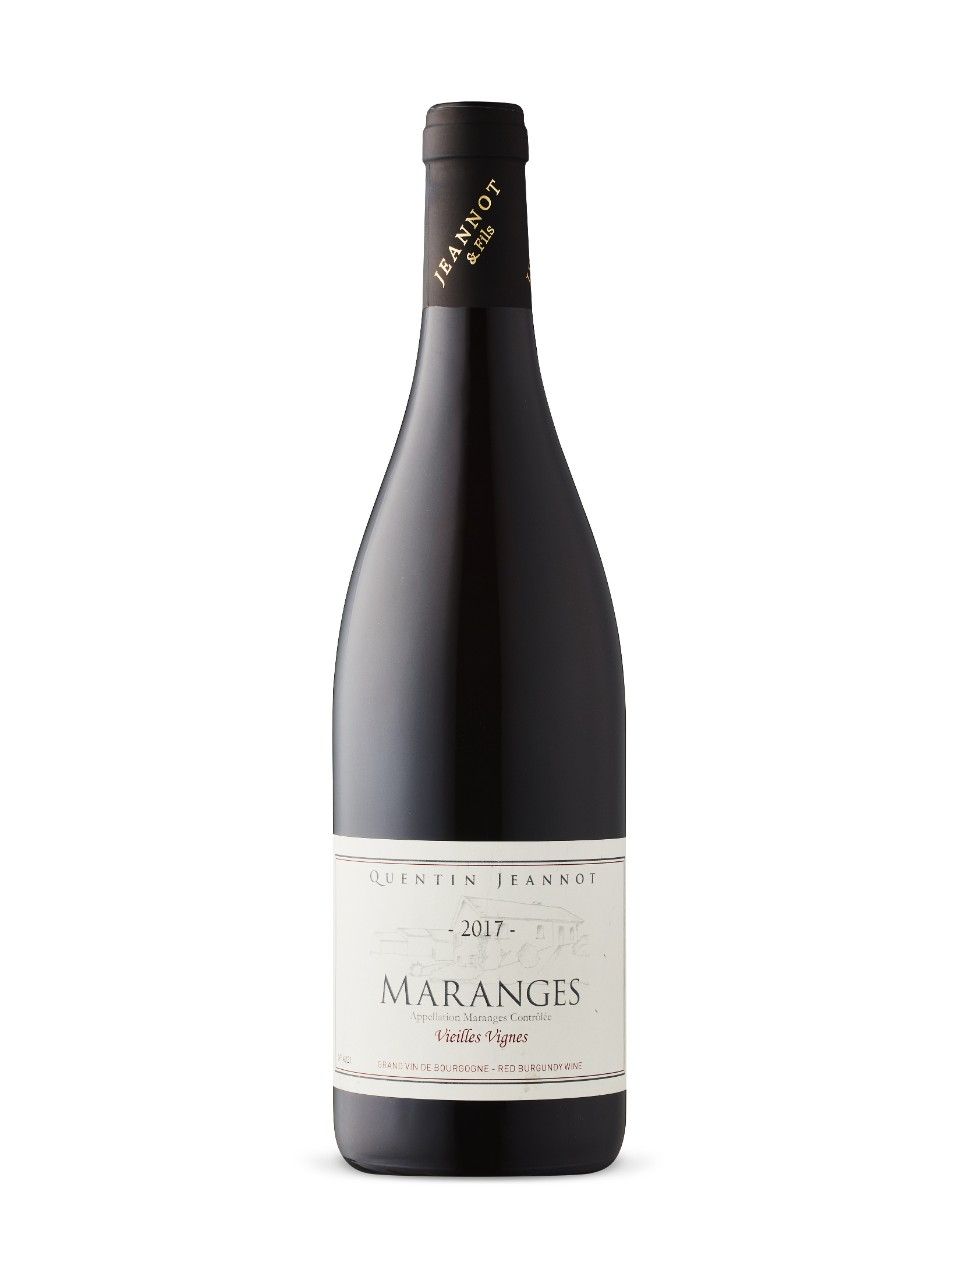 Maranges 'Vieilles Vignes' 2017 from LCBO